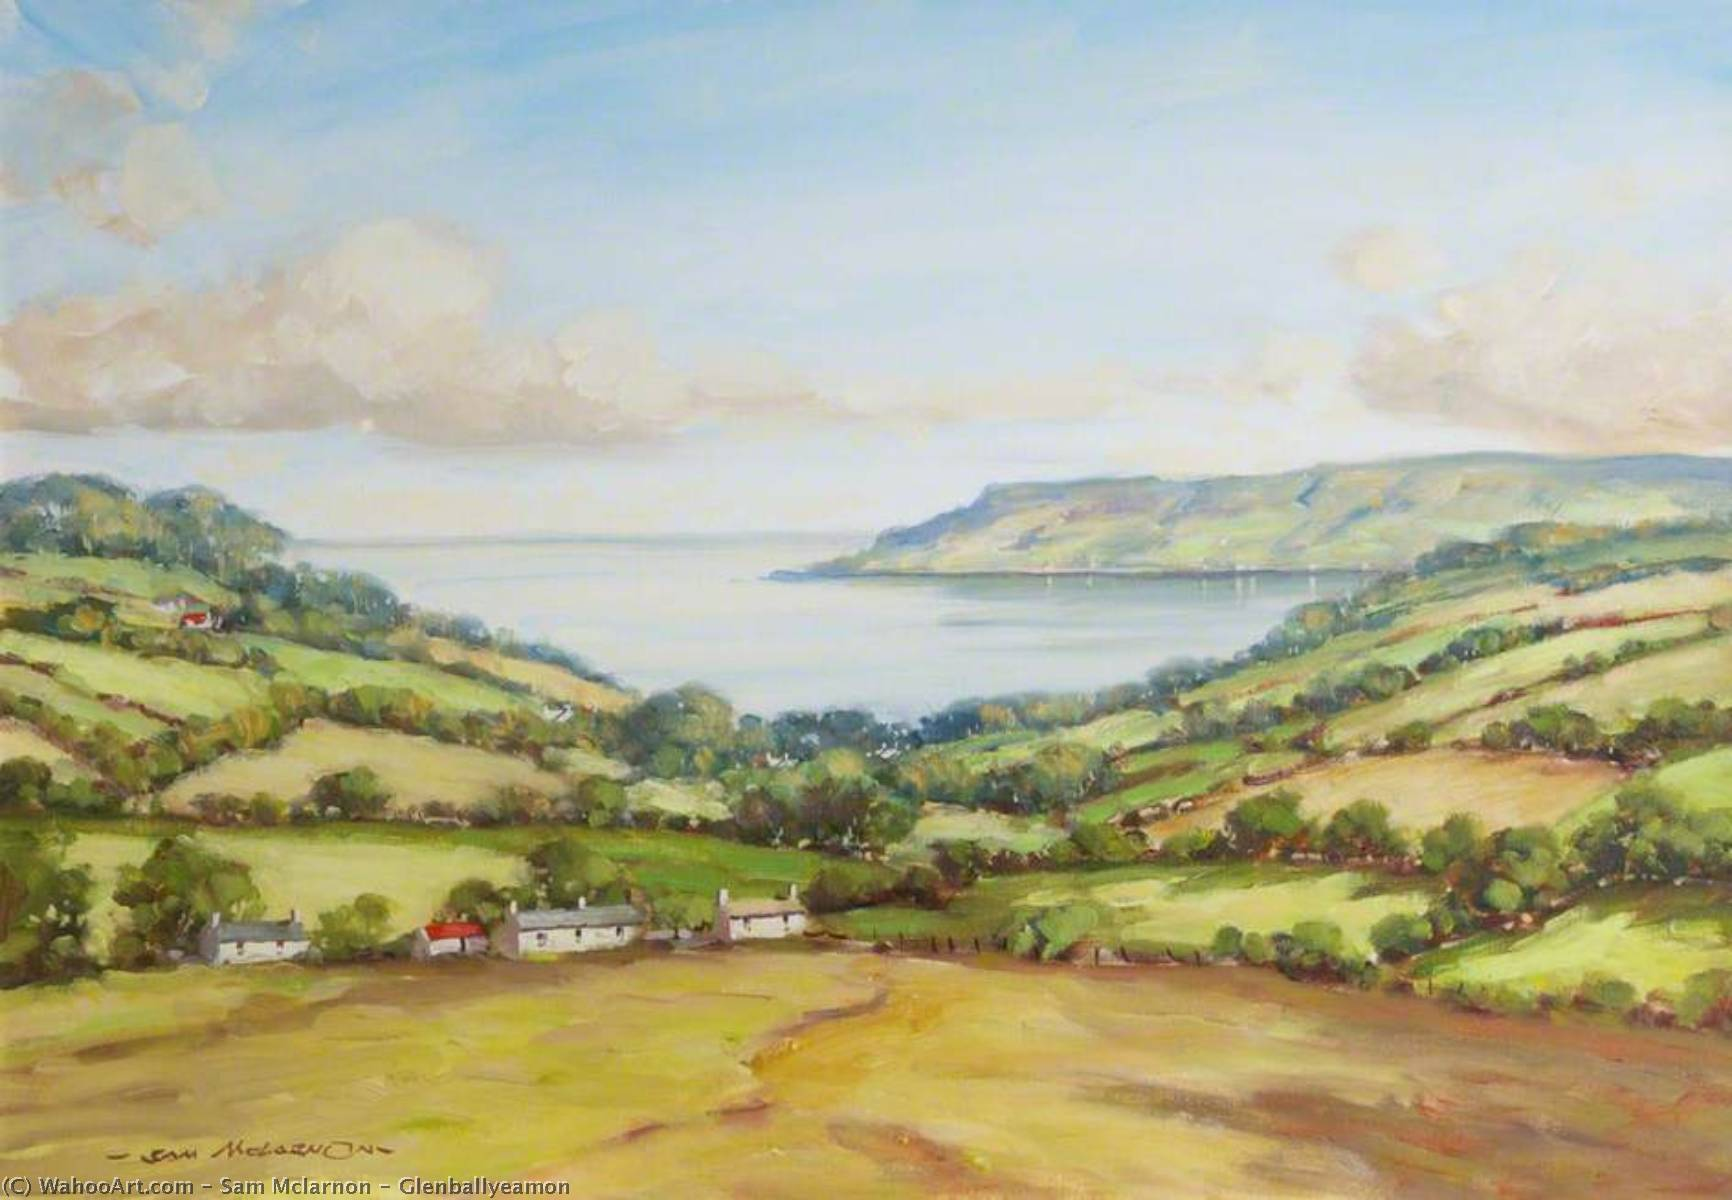 Glenballyeamon by Sam Mclarnon | Paintings Reproductions Sam Mclarnon | WahooArt.com